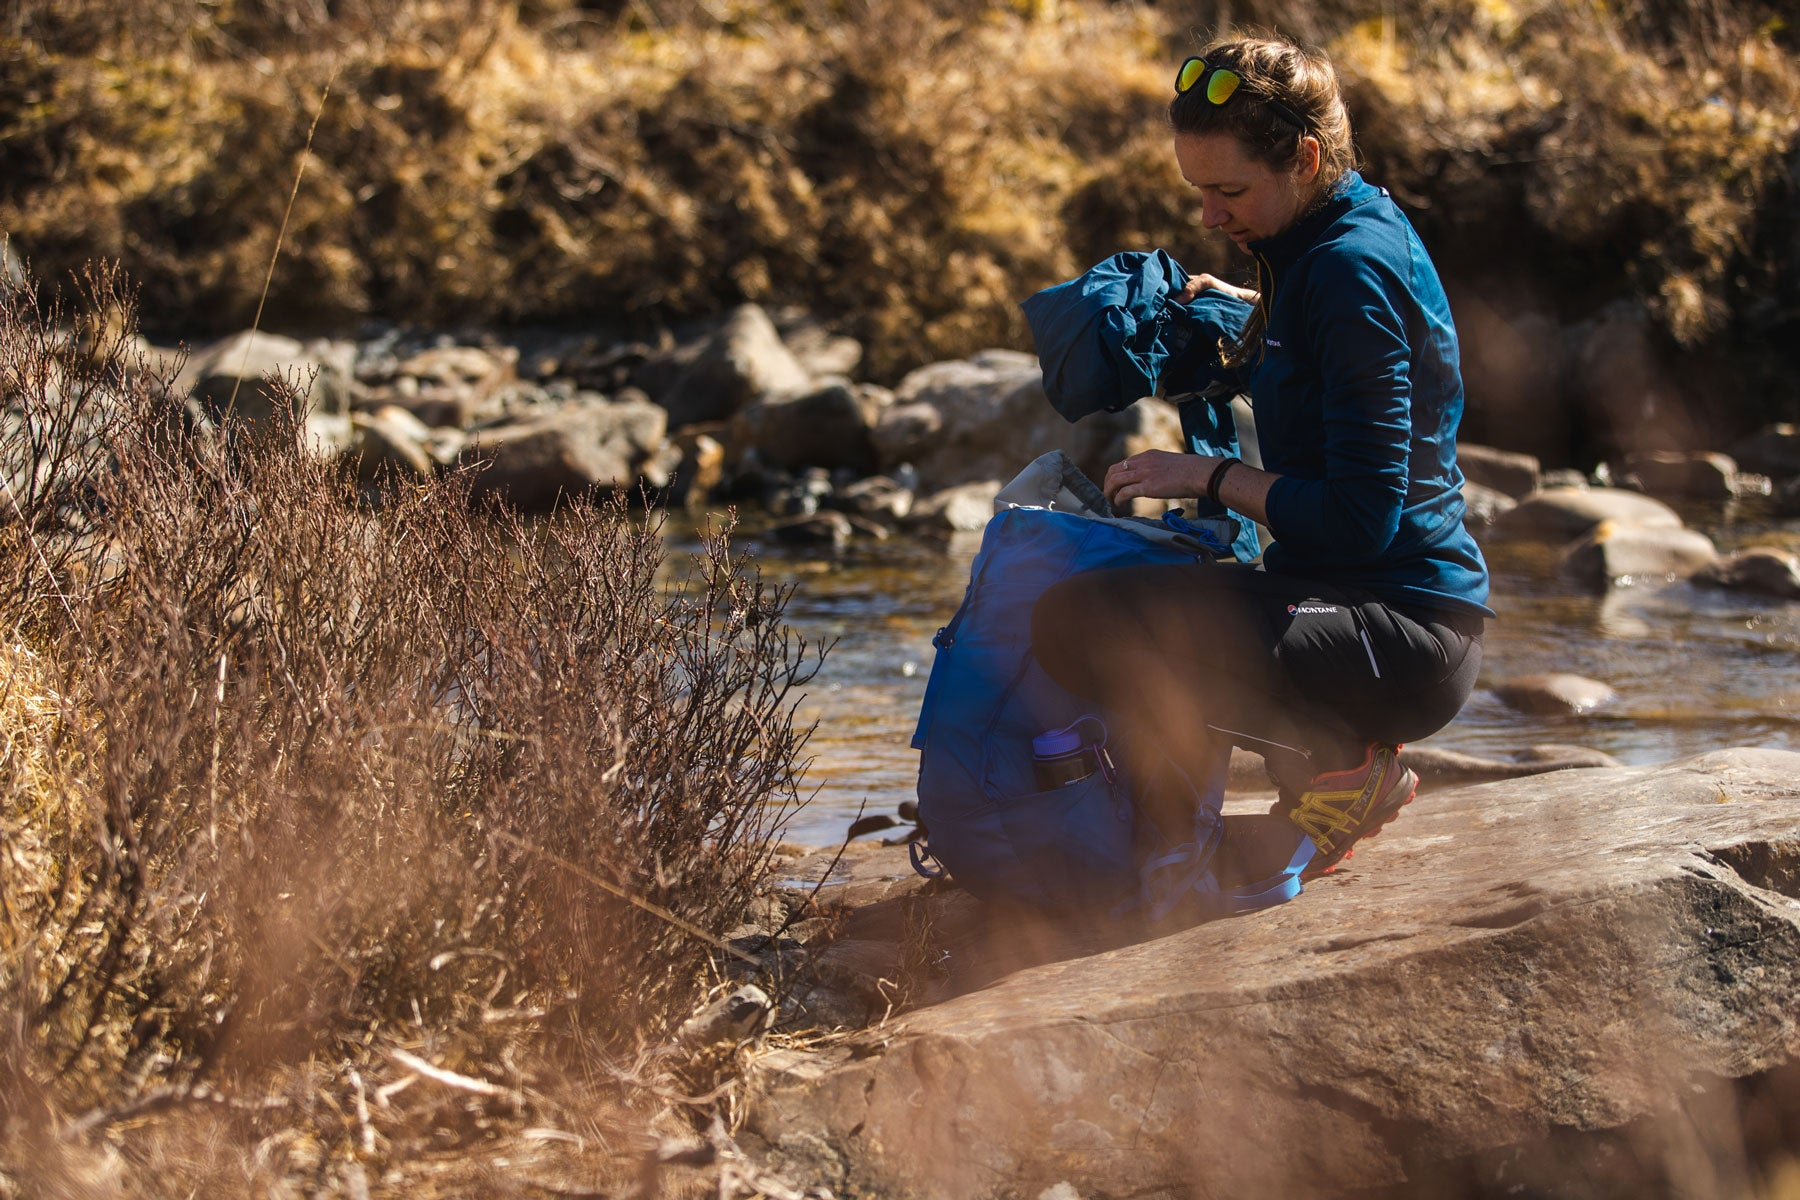 jenny tough fastpacking 101 packing guide | Montane